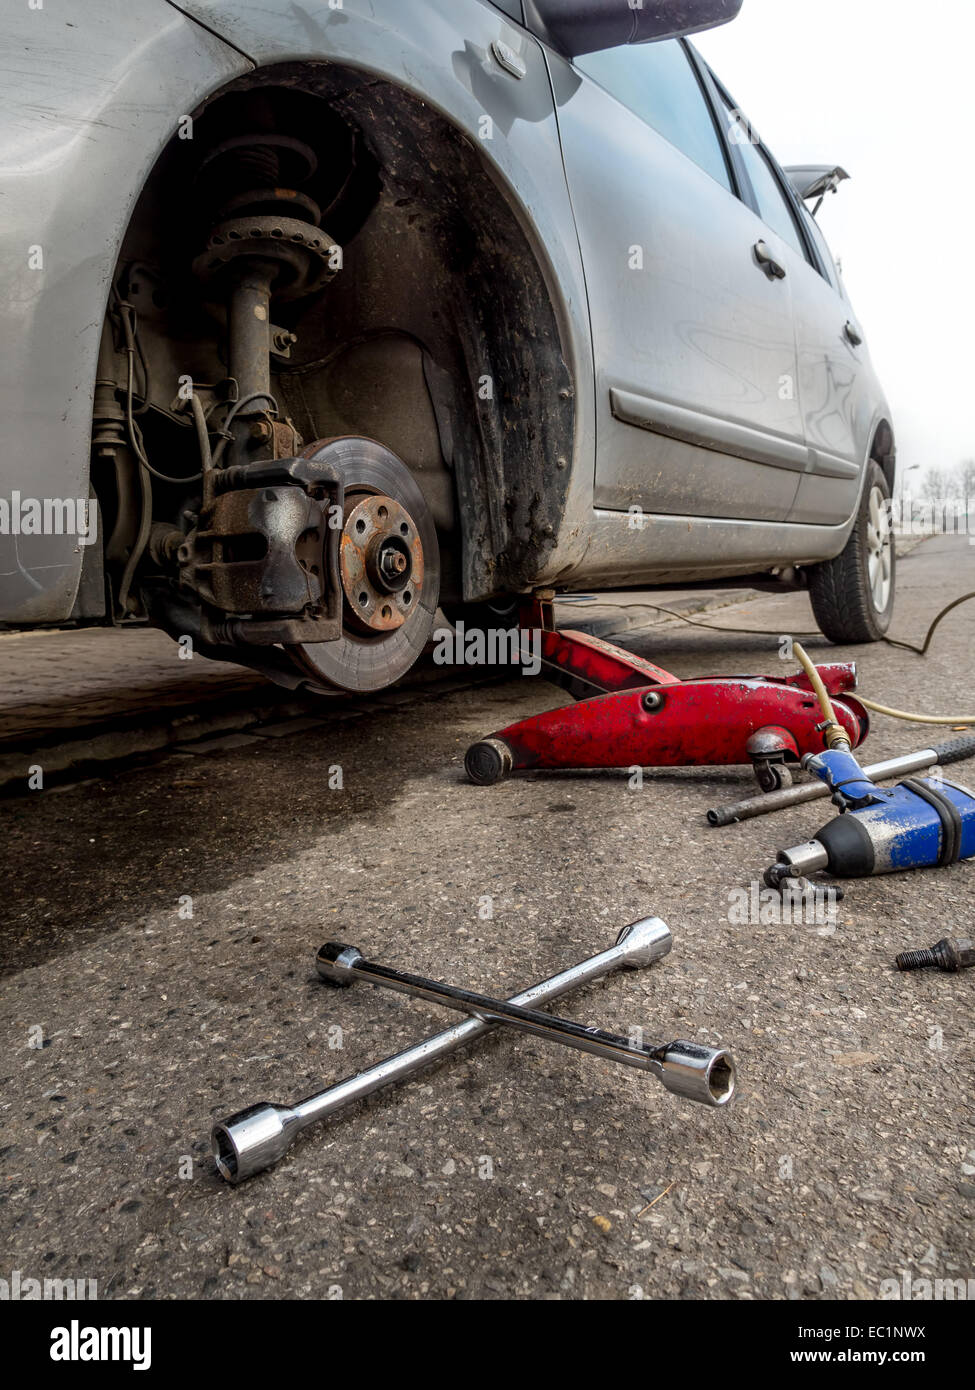 Passenger vehicle on lift with front tire removed - Stock Image